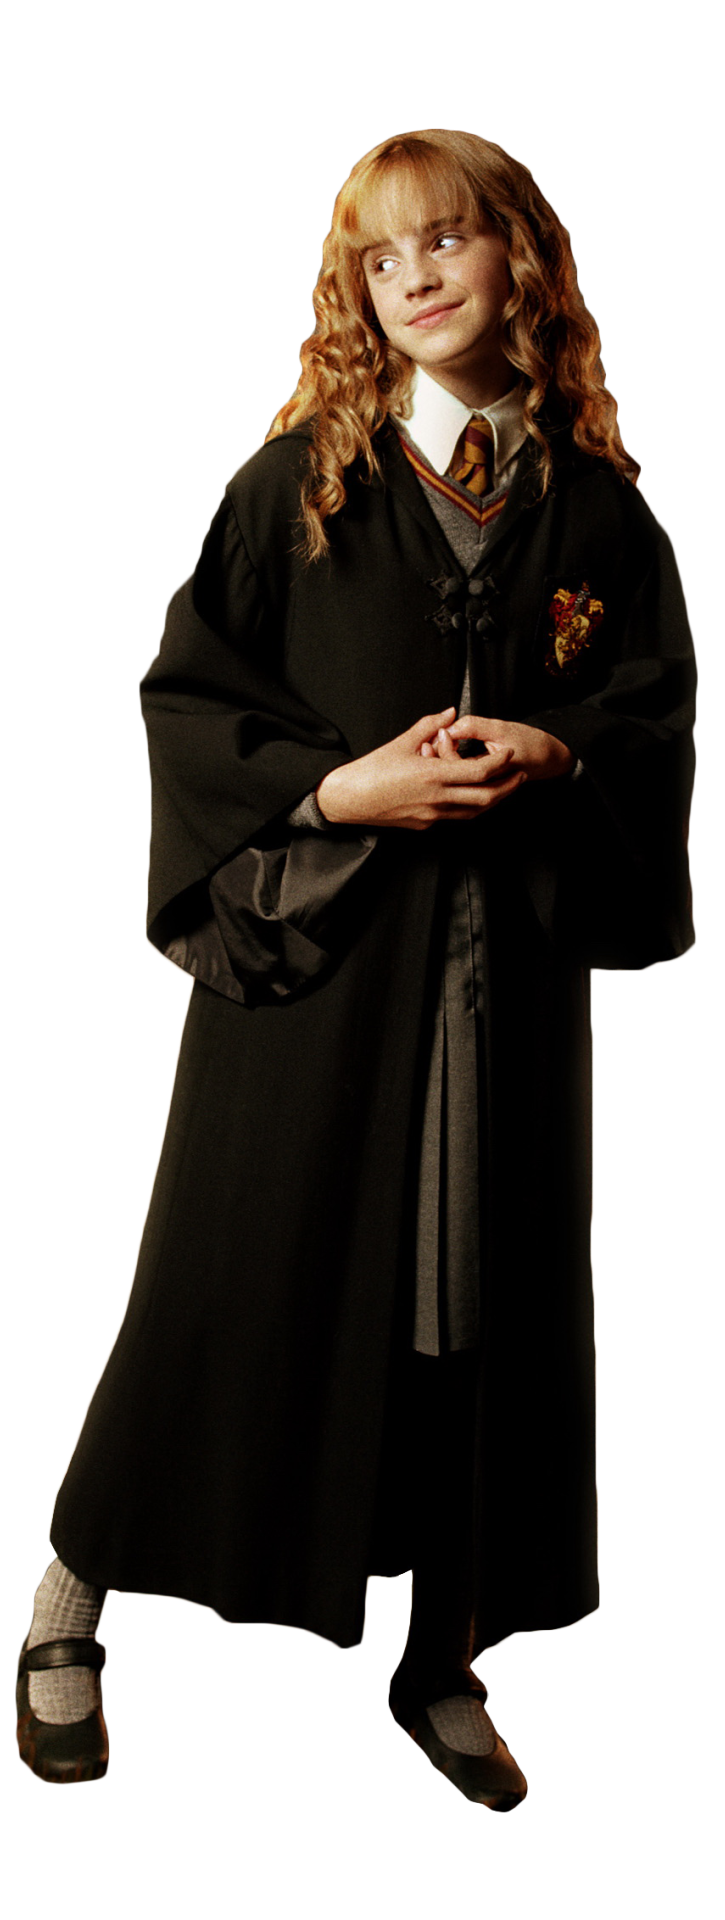 Hermione Granger Hermione Granger Hermione Granger Costume Harry Potter Outfits